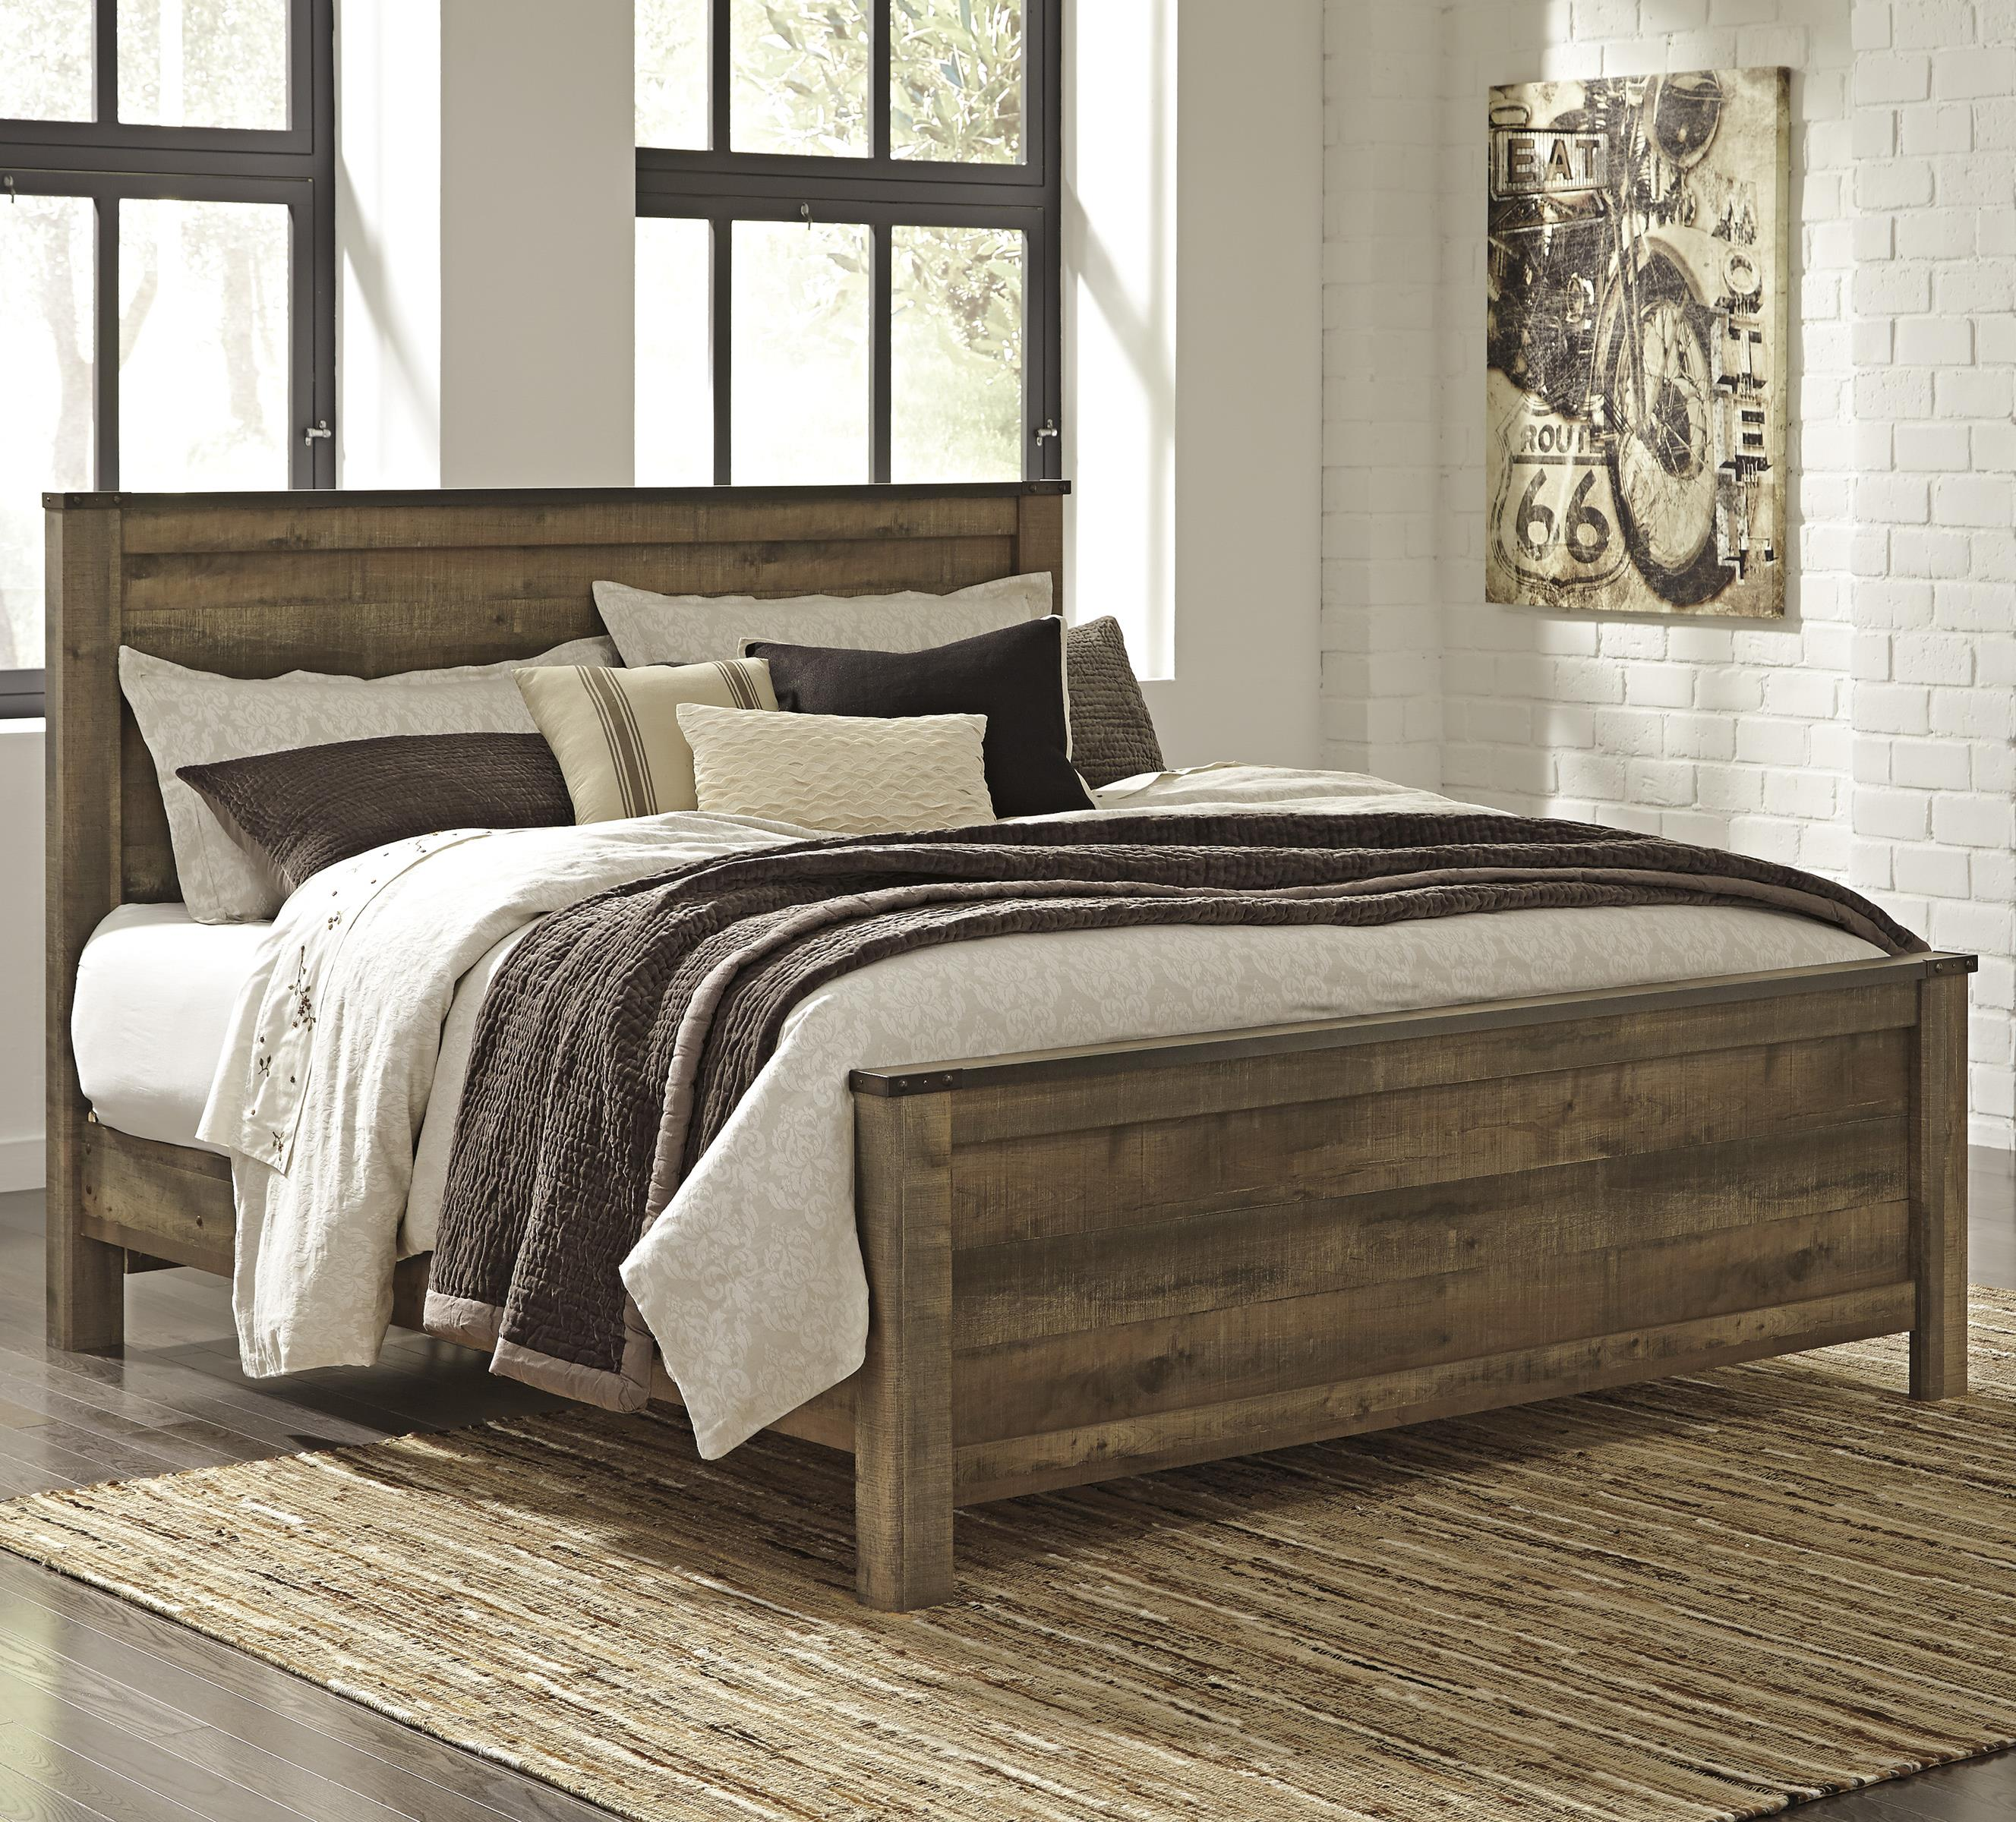 Ashley Signature Design Trinell Rustic Look King Panel Bed Dunk Amp Bright Furniture Panel Beds